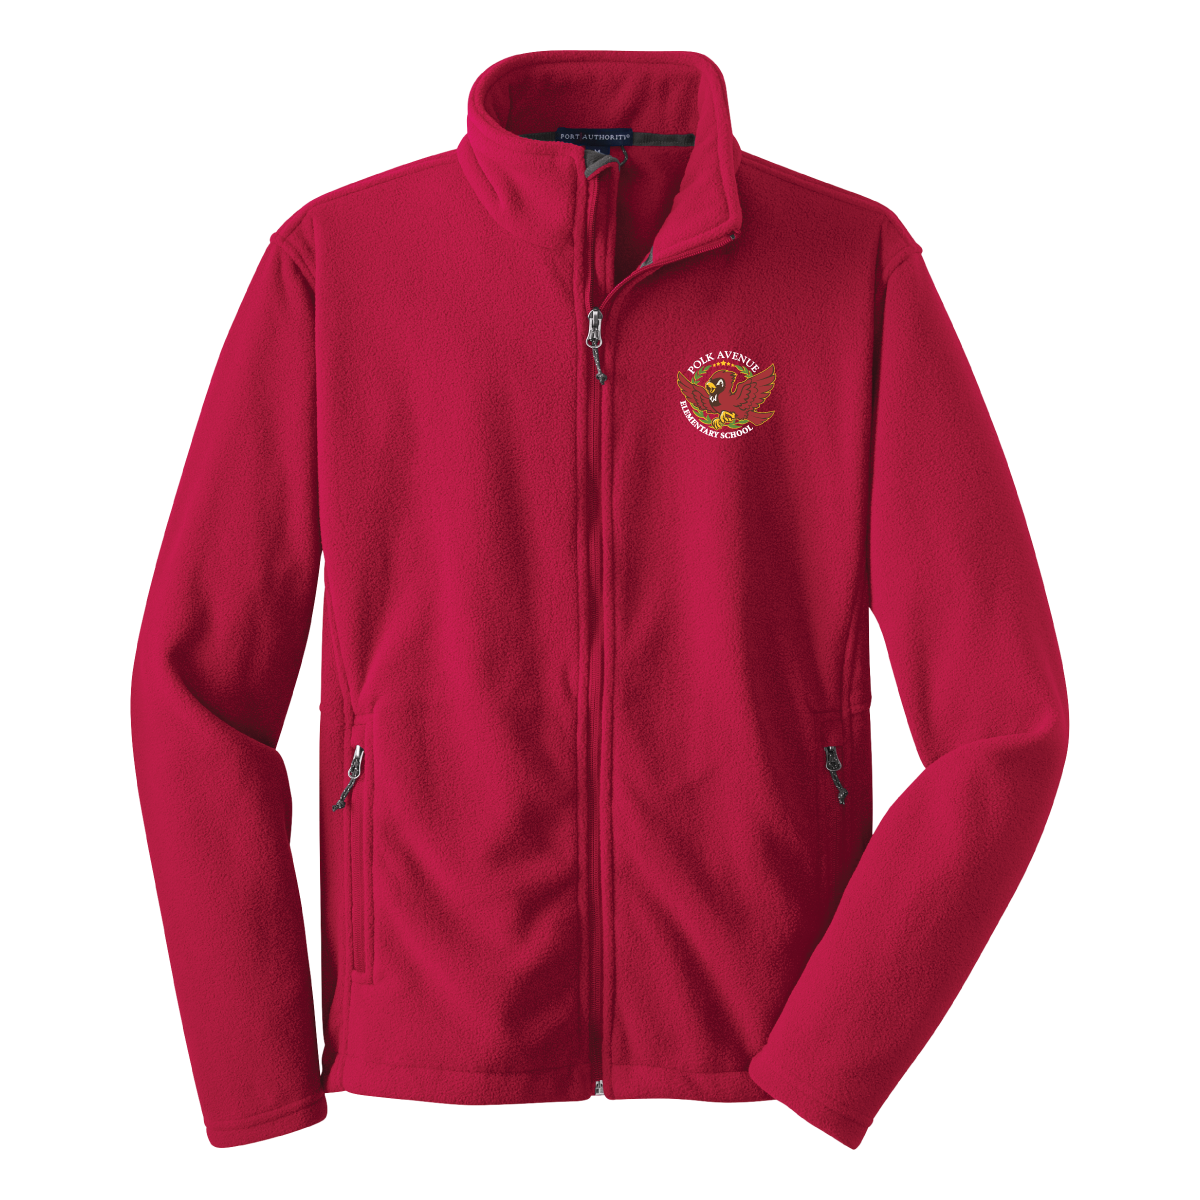 Polk Avenue Elem Port Authority® Value Fleece Jacket - Red